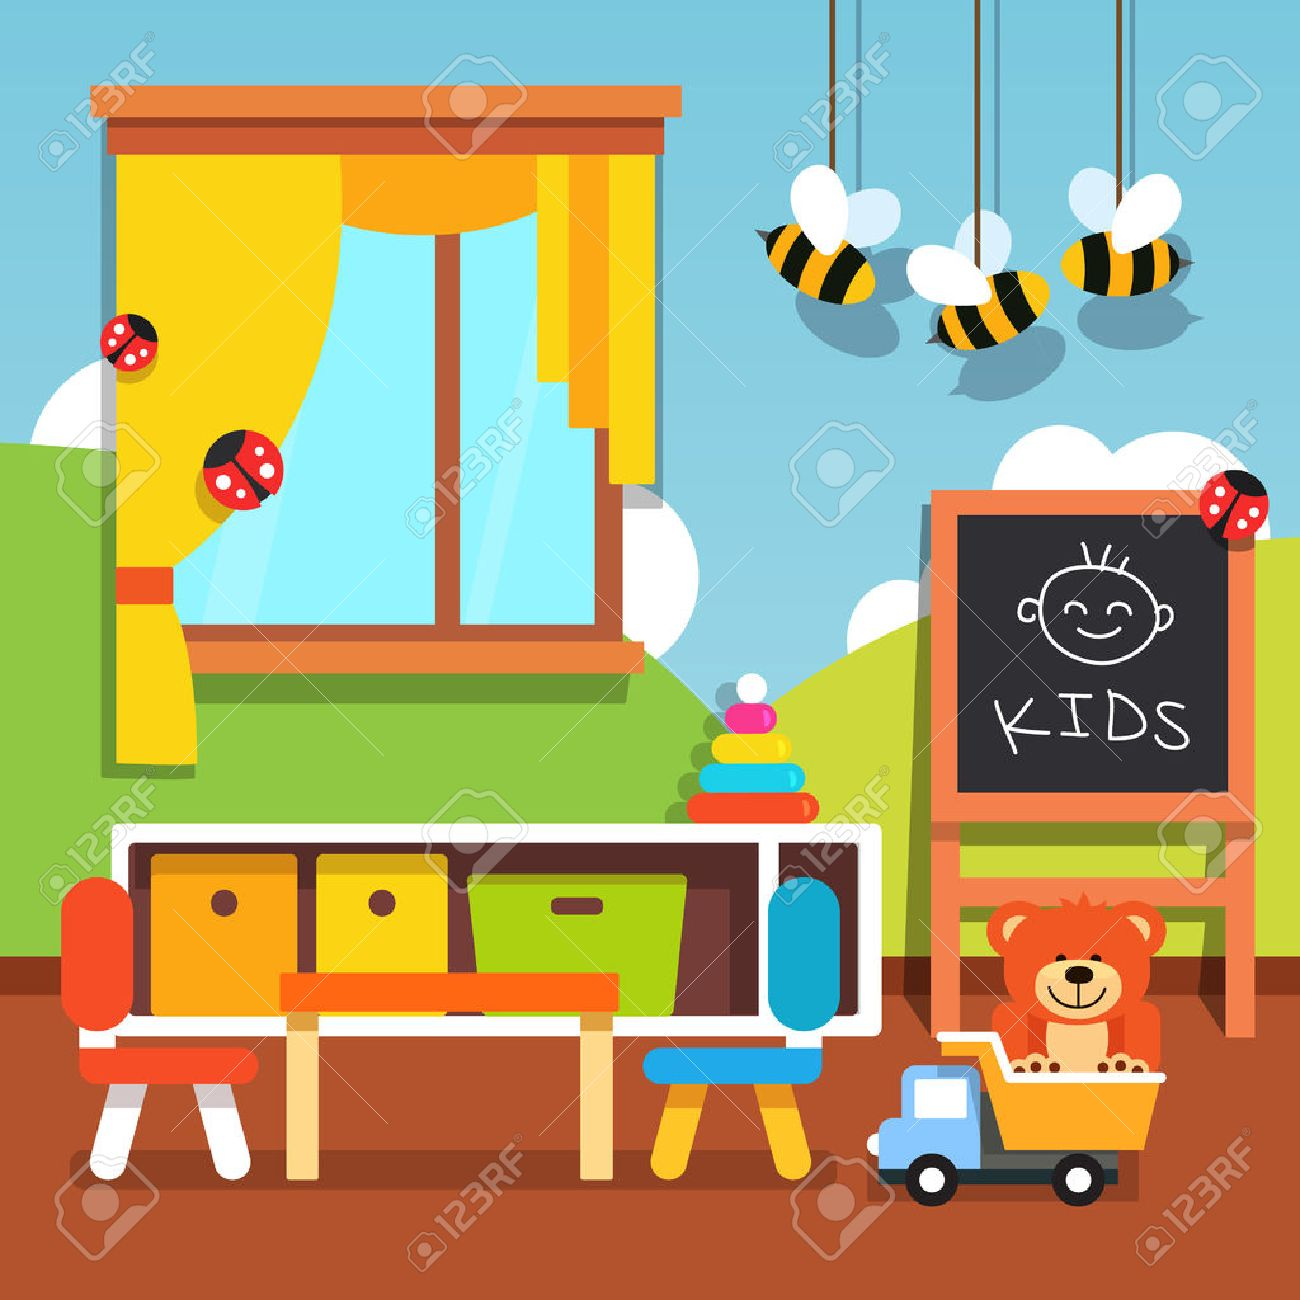 Preschool kindergarten classroom with desk, chairs, chalkboard...